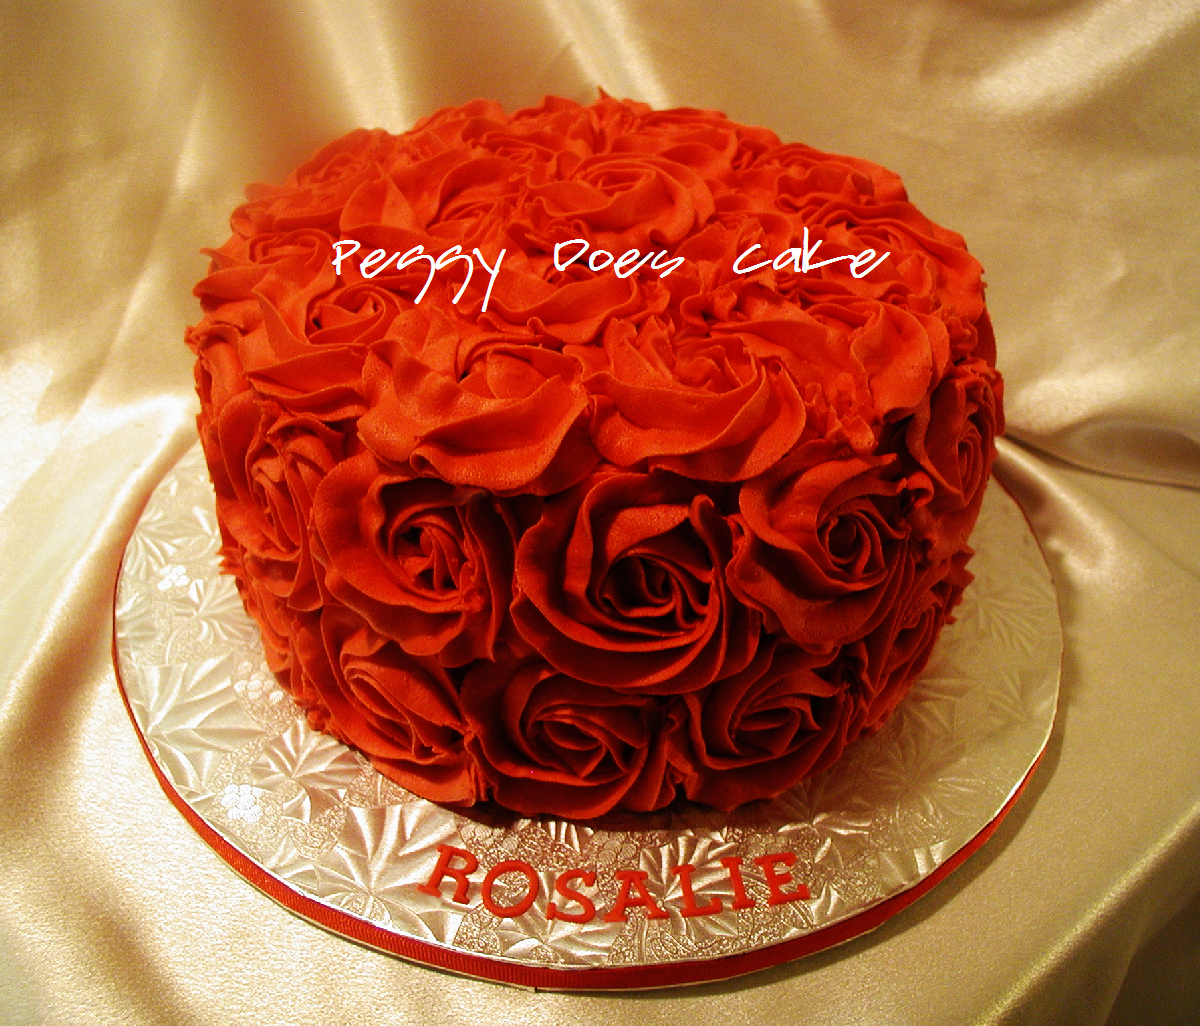 Peggy Does Cake.: Red Roses (Cake) For Rosalie